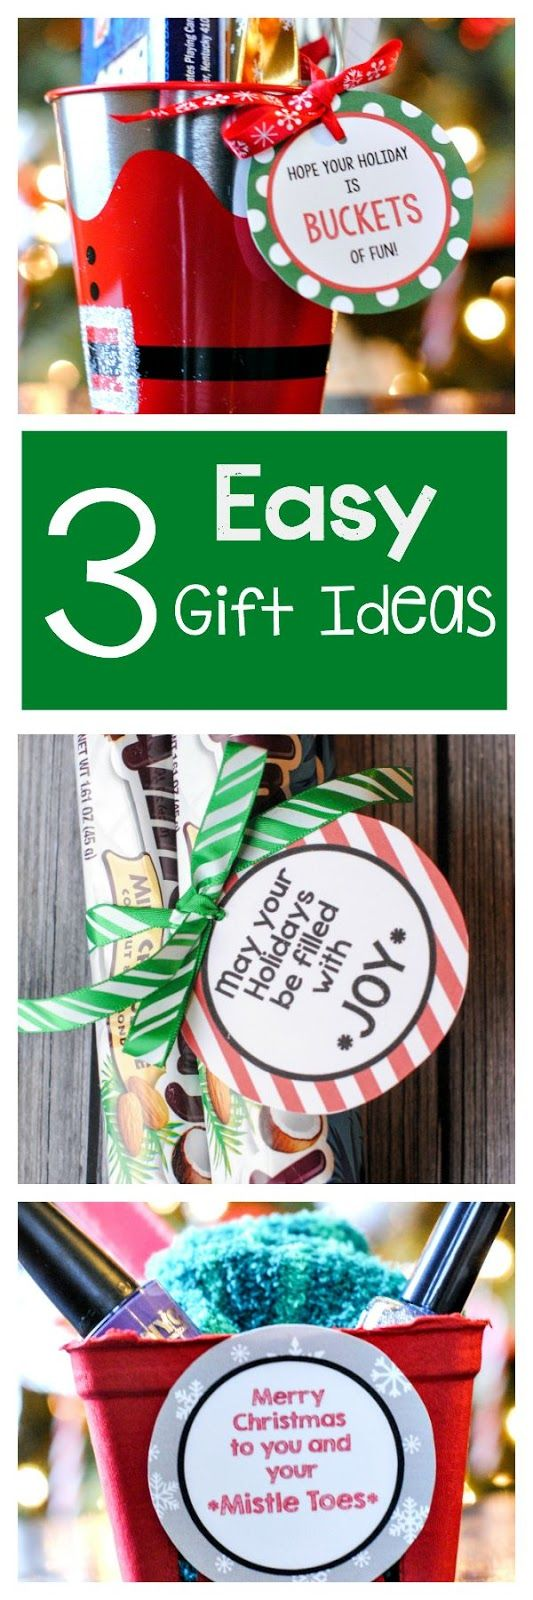 3 EASY GIFTS IDEAS FOR FRIENDS | Home Decoration